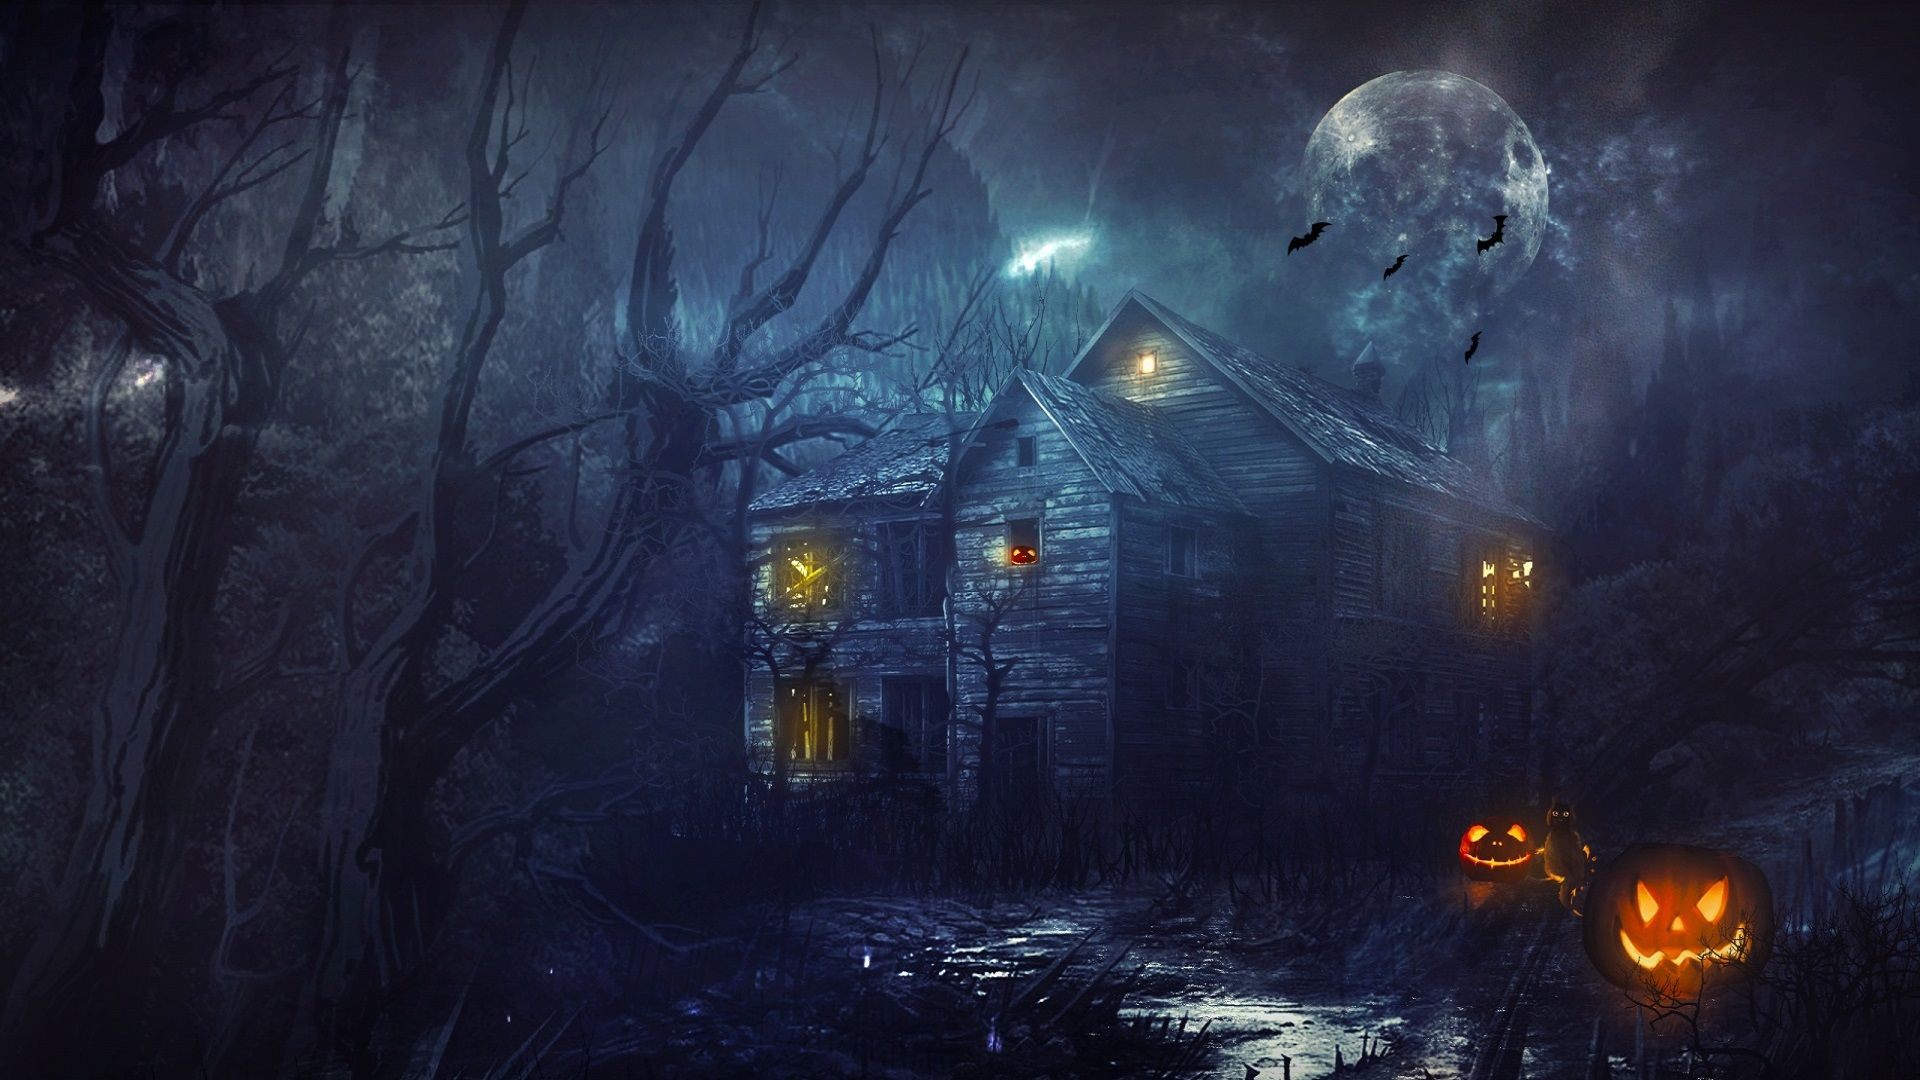 halloween background - Halloween Background Images Free